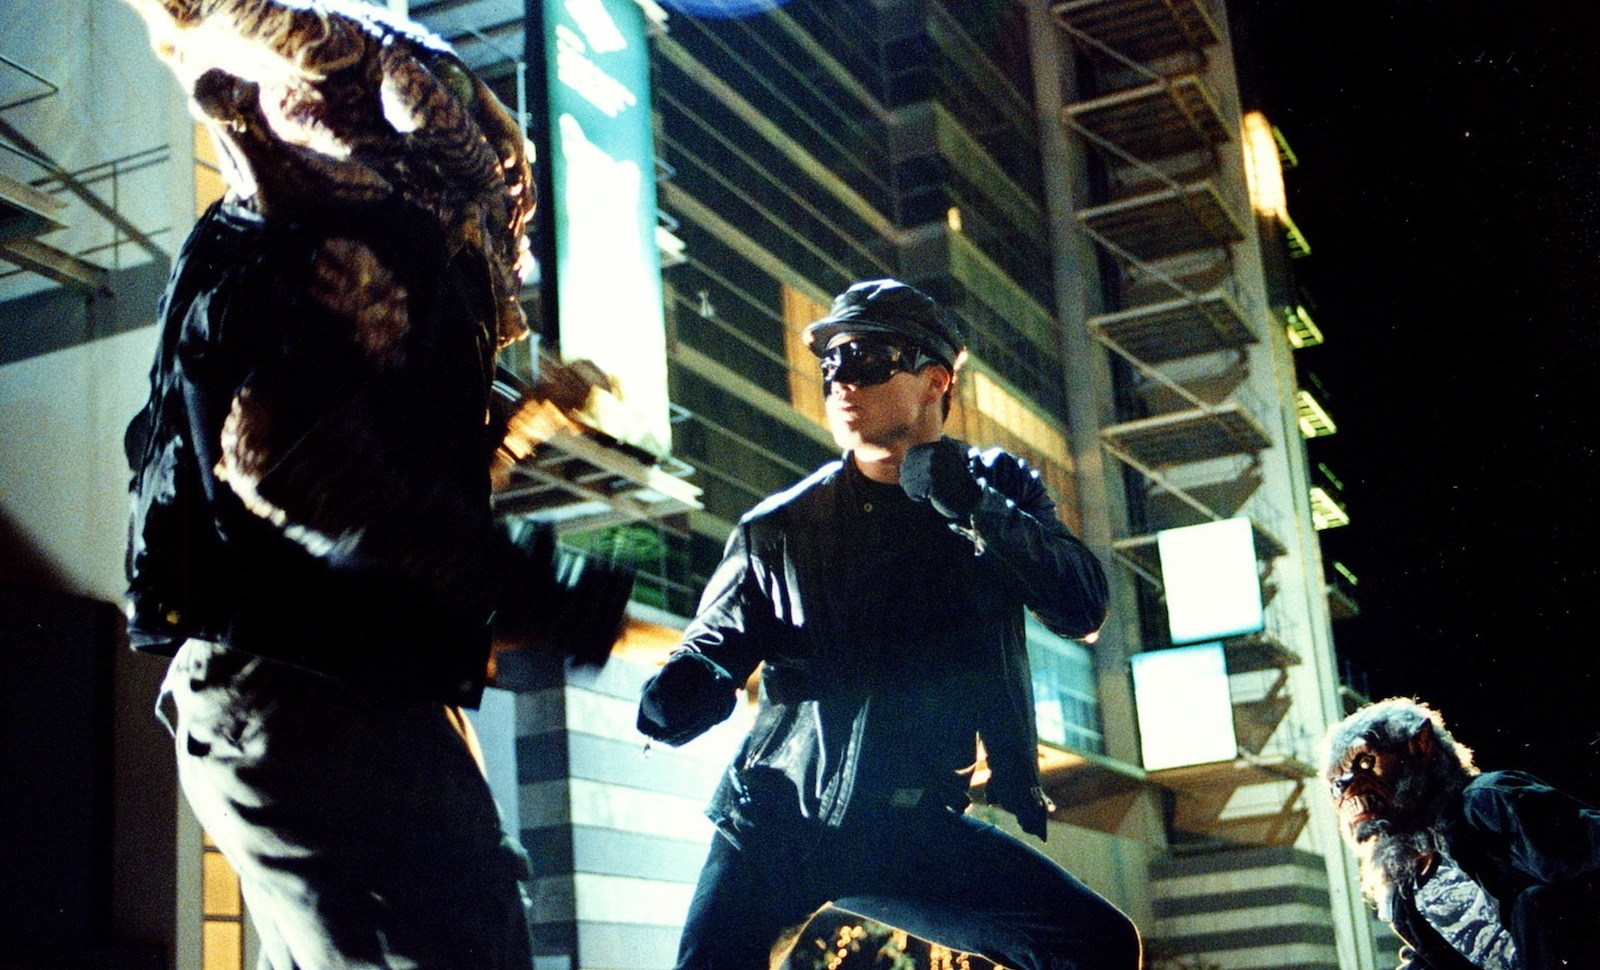 Andy On tackles mutant monsters in Black Mask 2: City of Masks (2002)